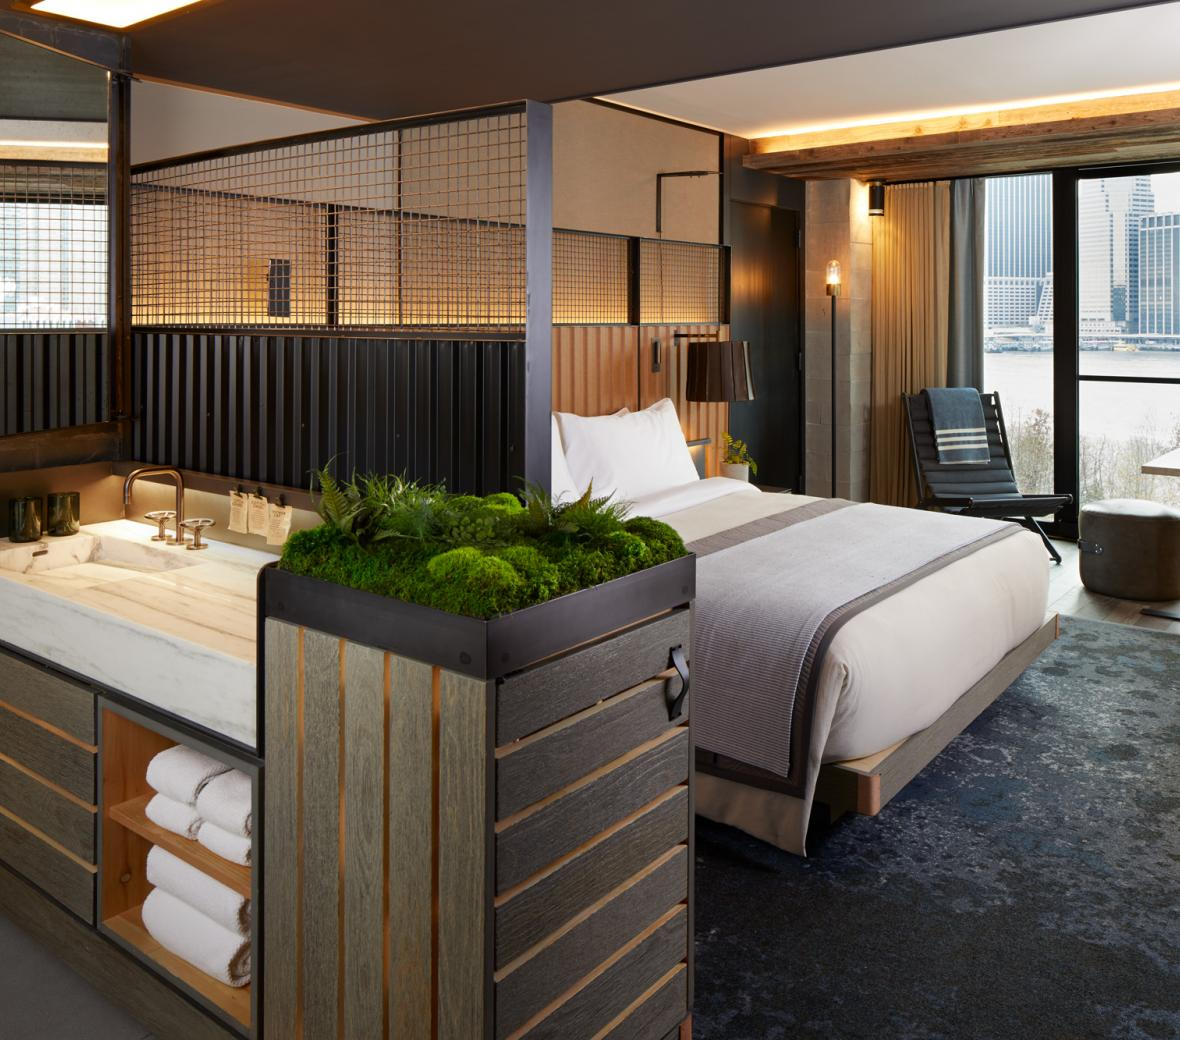 A king sized bed in a suite with a view of the Manhattan skyline